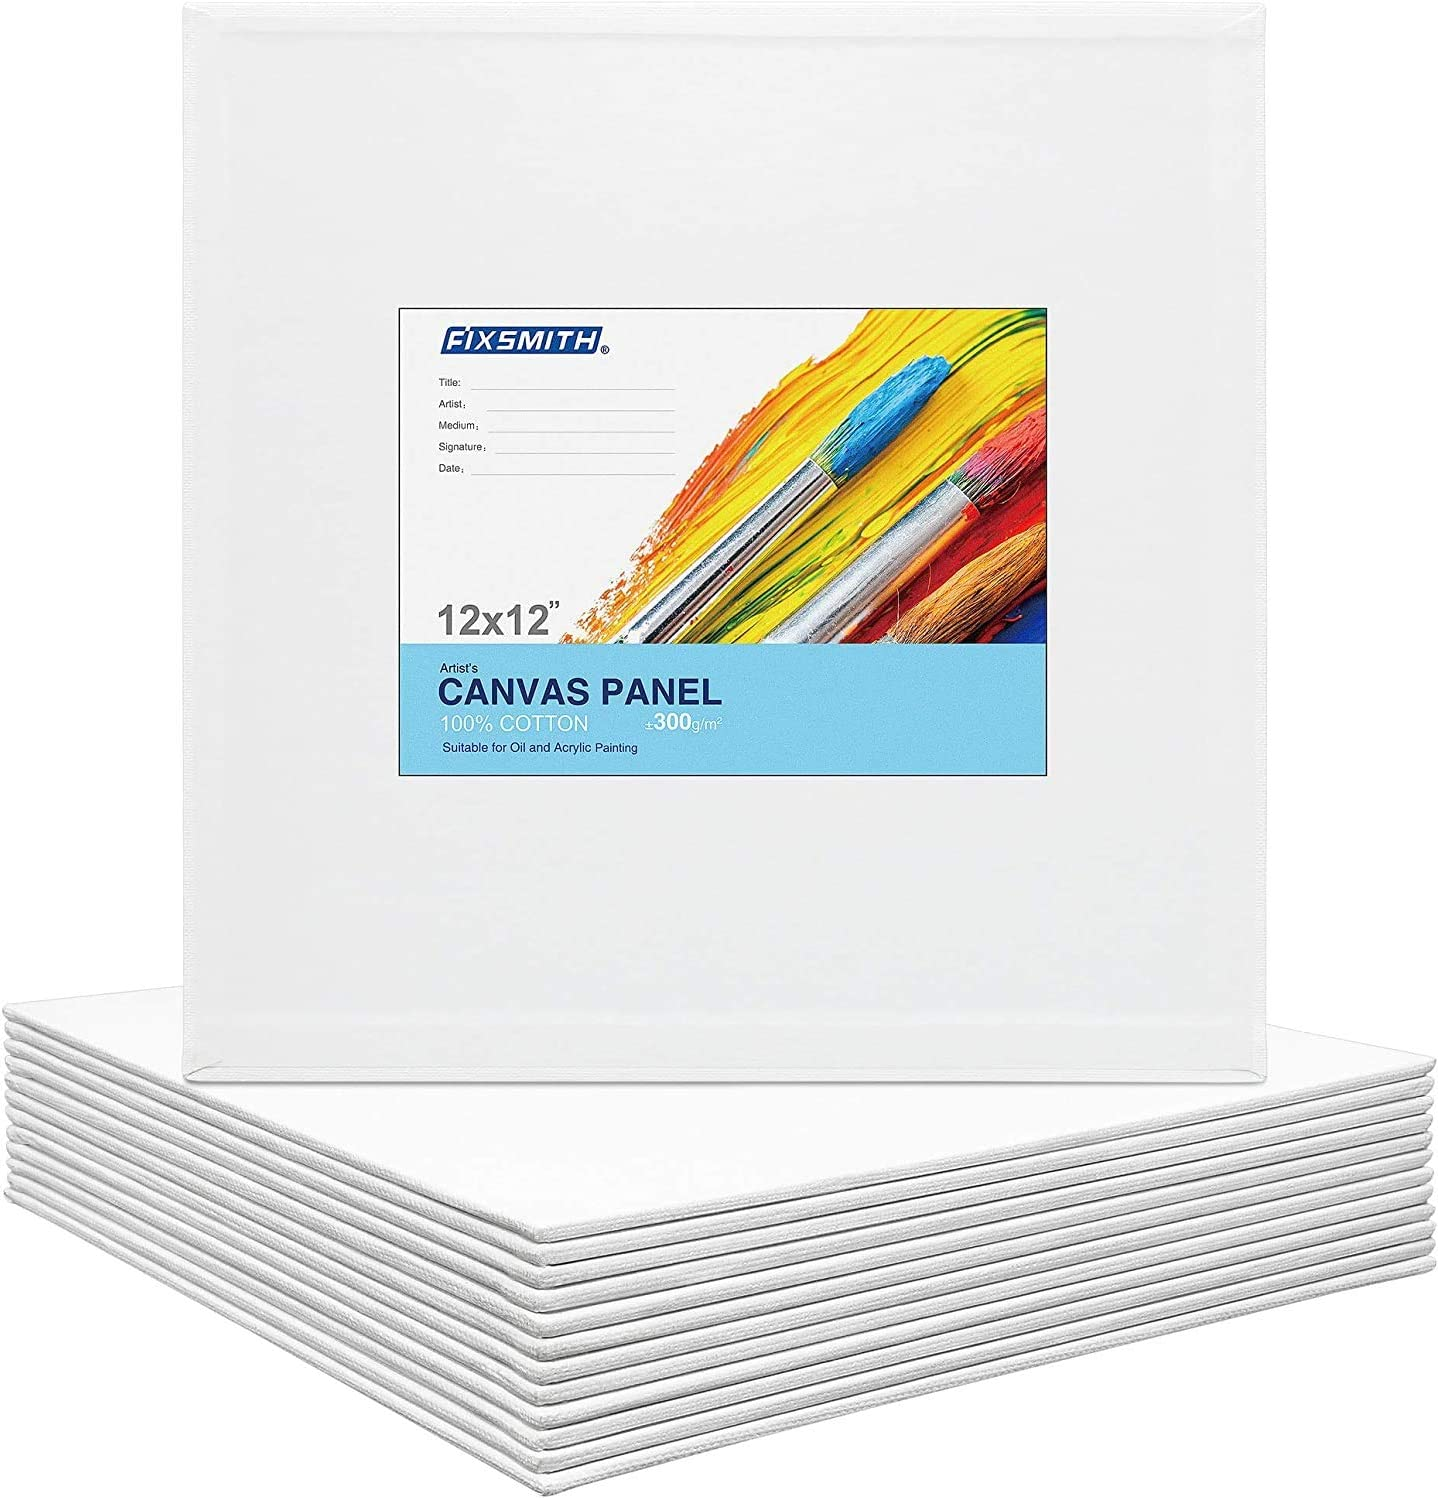 FIXSMITH Painting Canvas Panels 12x12 inch Professional Quality Canvas Painter Paper Boards,Super Value 12 Pack,100/% Cotton,Back to School,Primed,Acid Free,Suitable for Professionals,Artists,Beginners,Hobby Painters,Students /& Kids